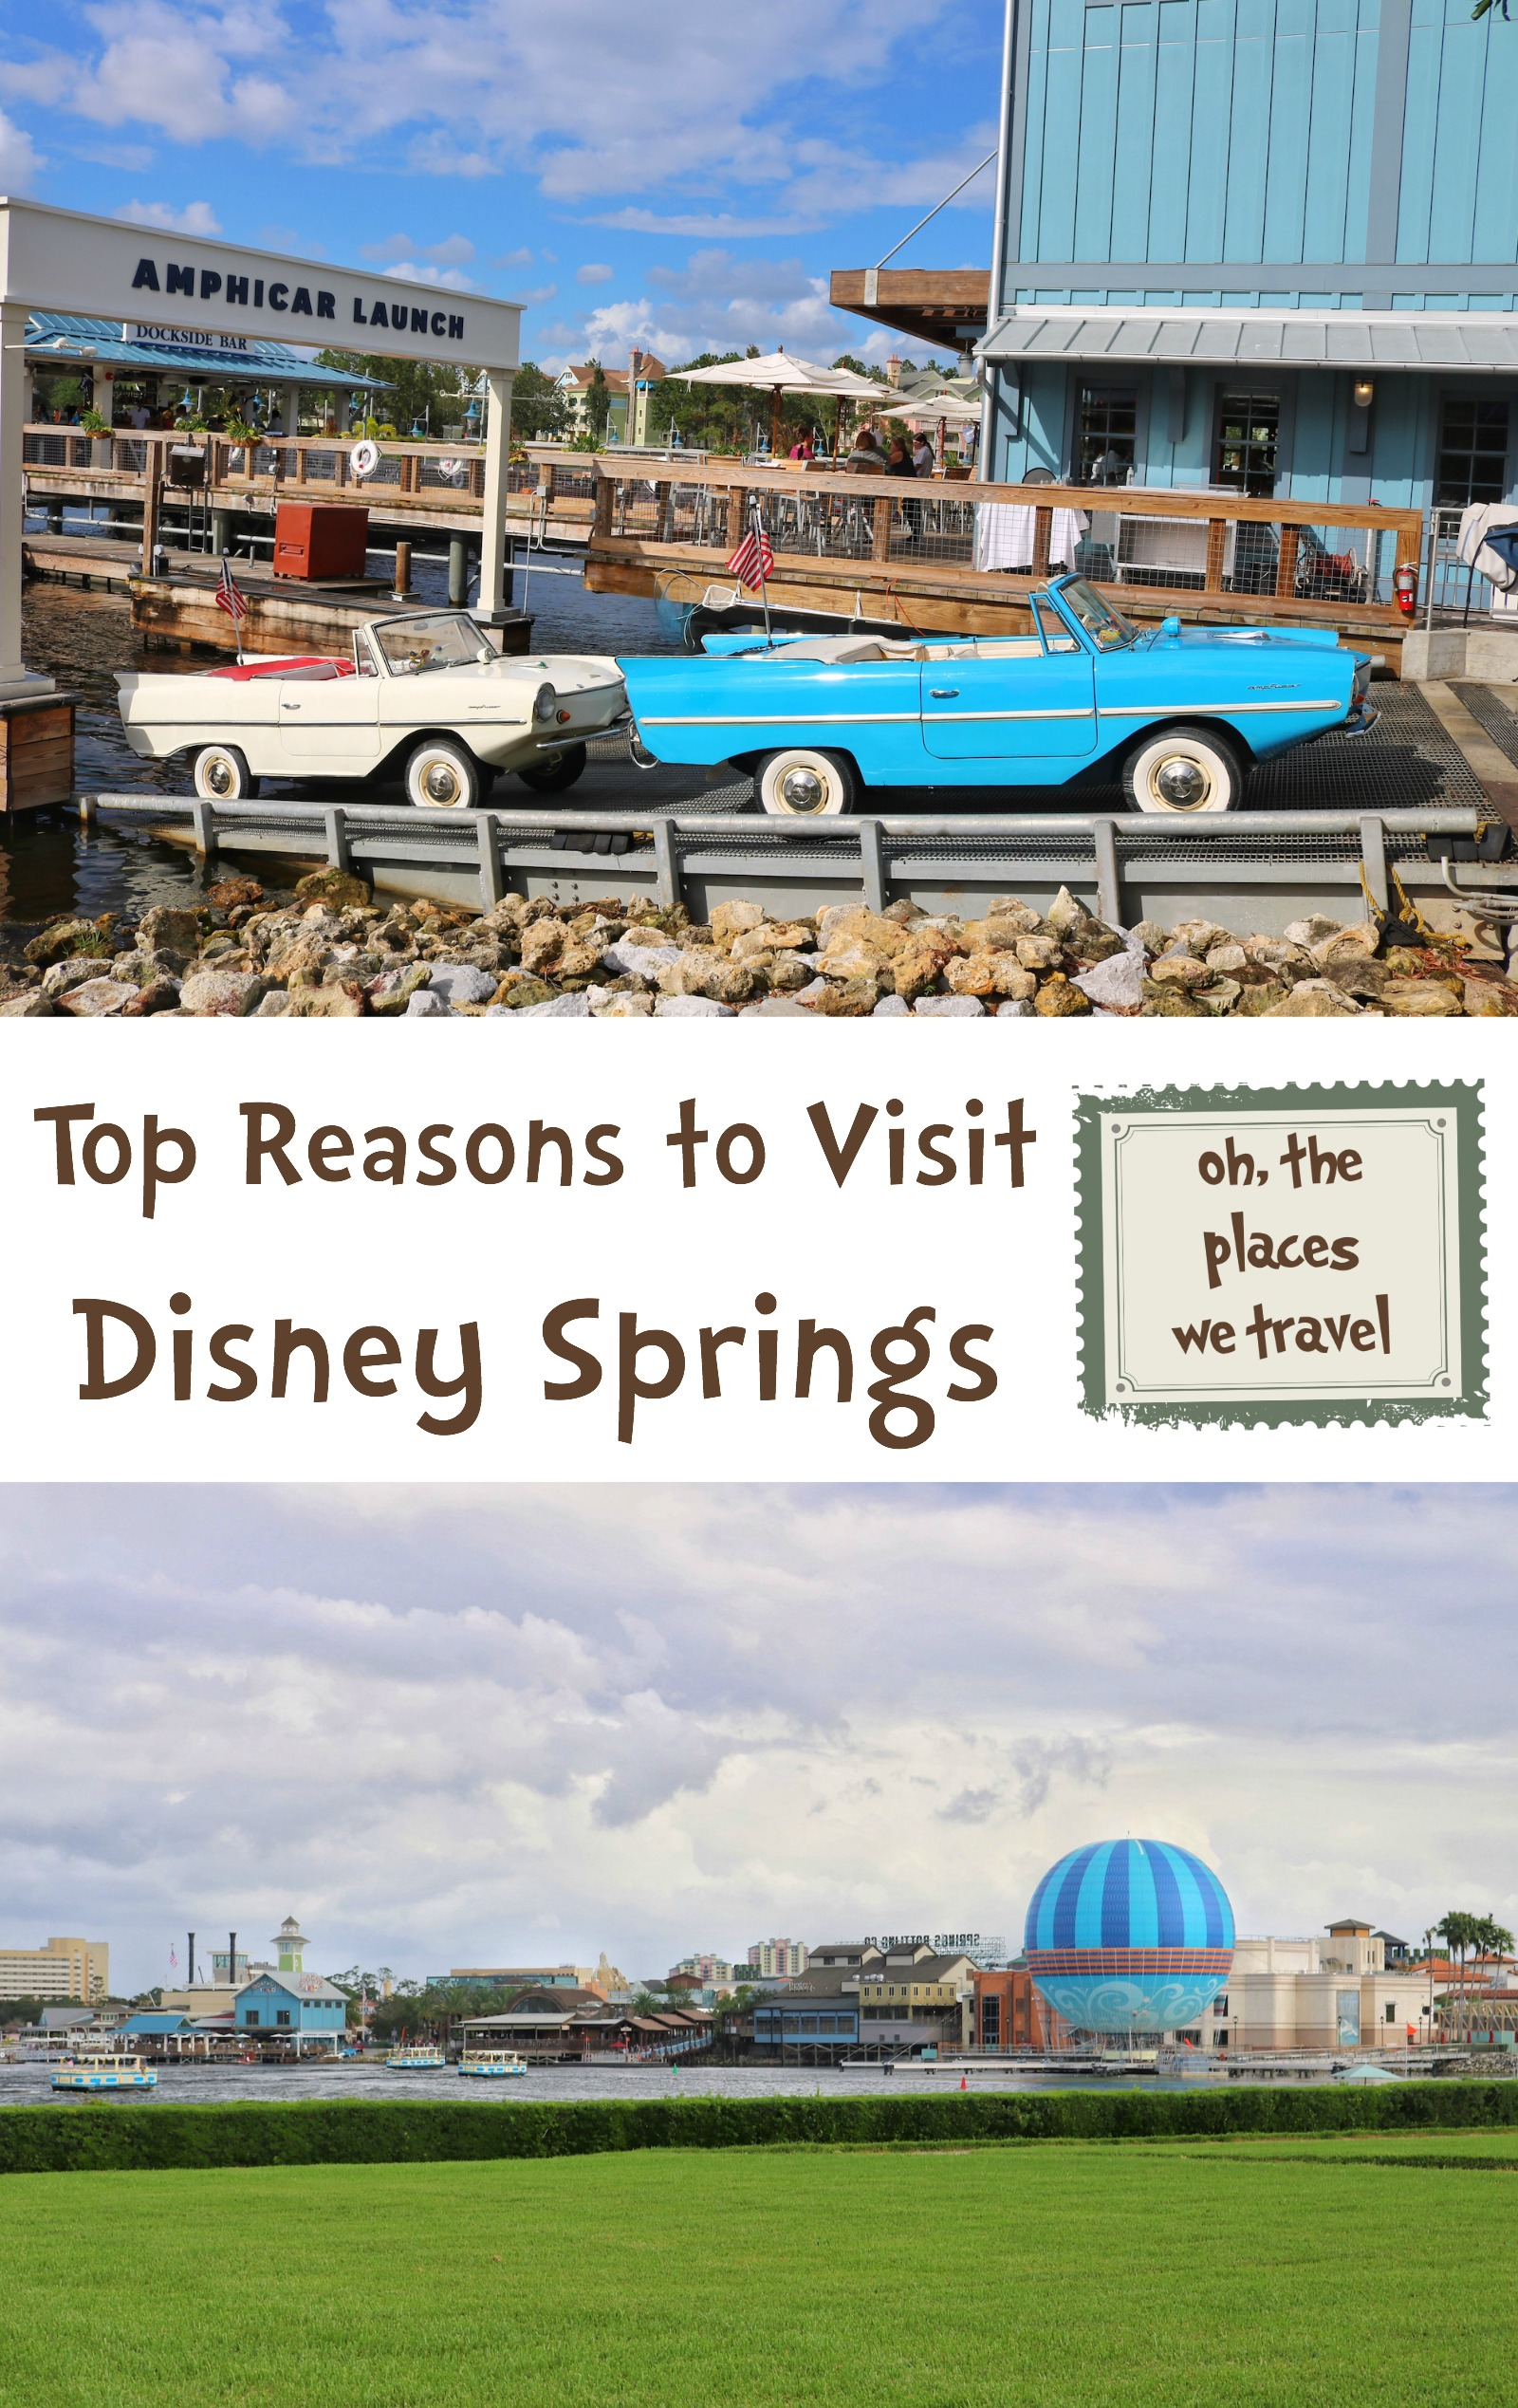 Top Reasons to Visit Disney Springs